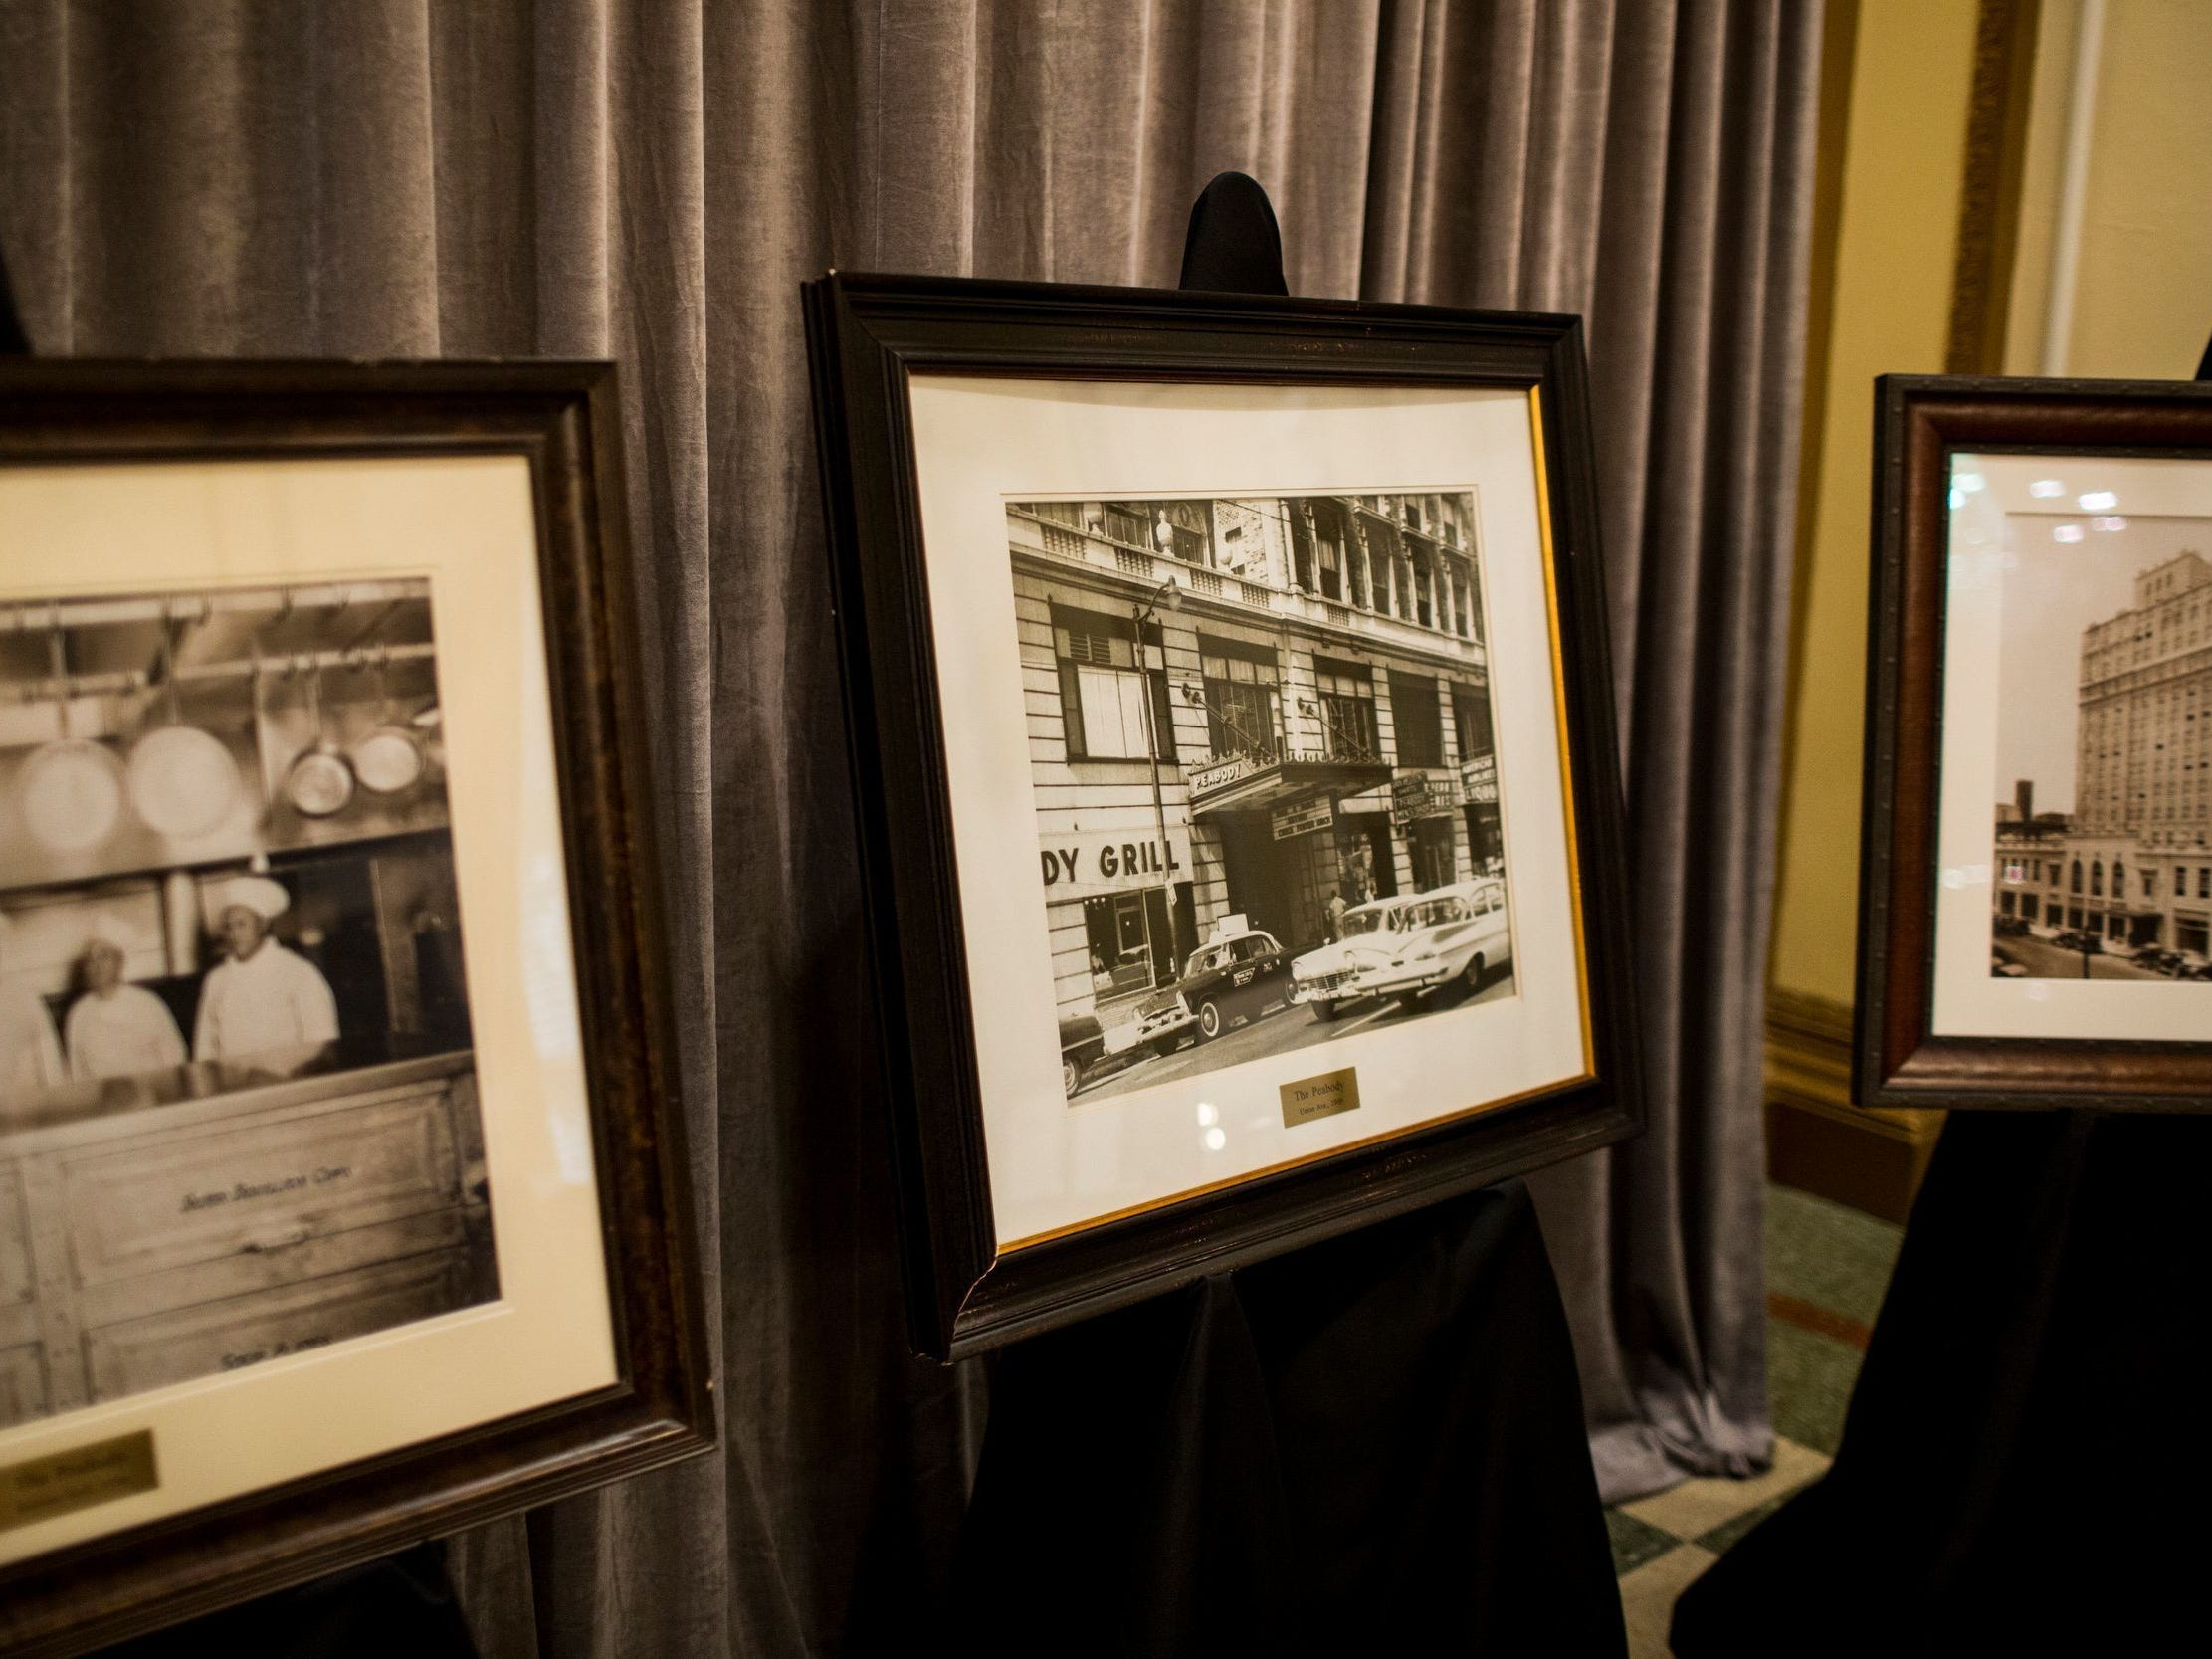 Historic photos were on display during The Peabody 150th anniversary media launch party Feb. 6, 2019. The Peabody Memphis will celebrate its 150th anniversary in 2019 with a series of special offers and events.